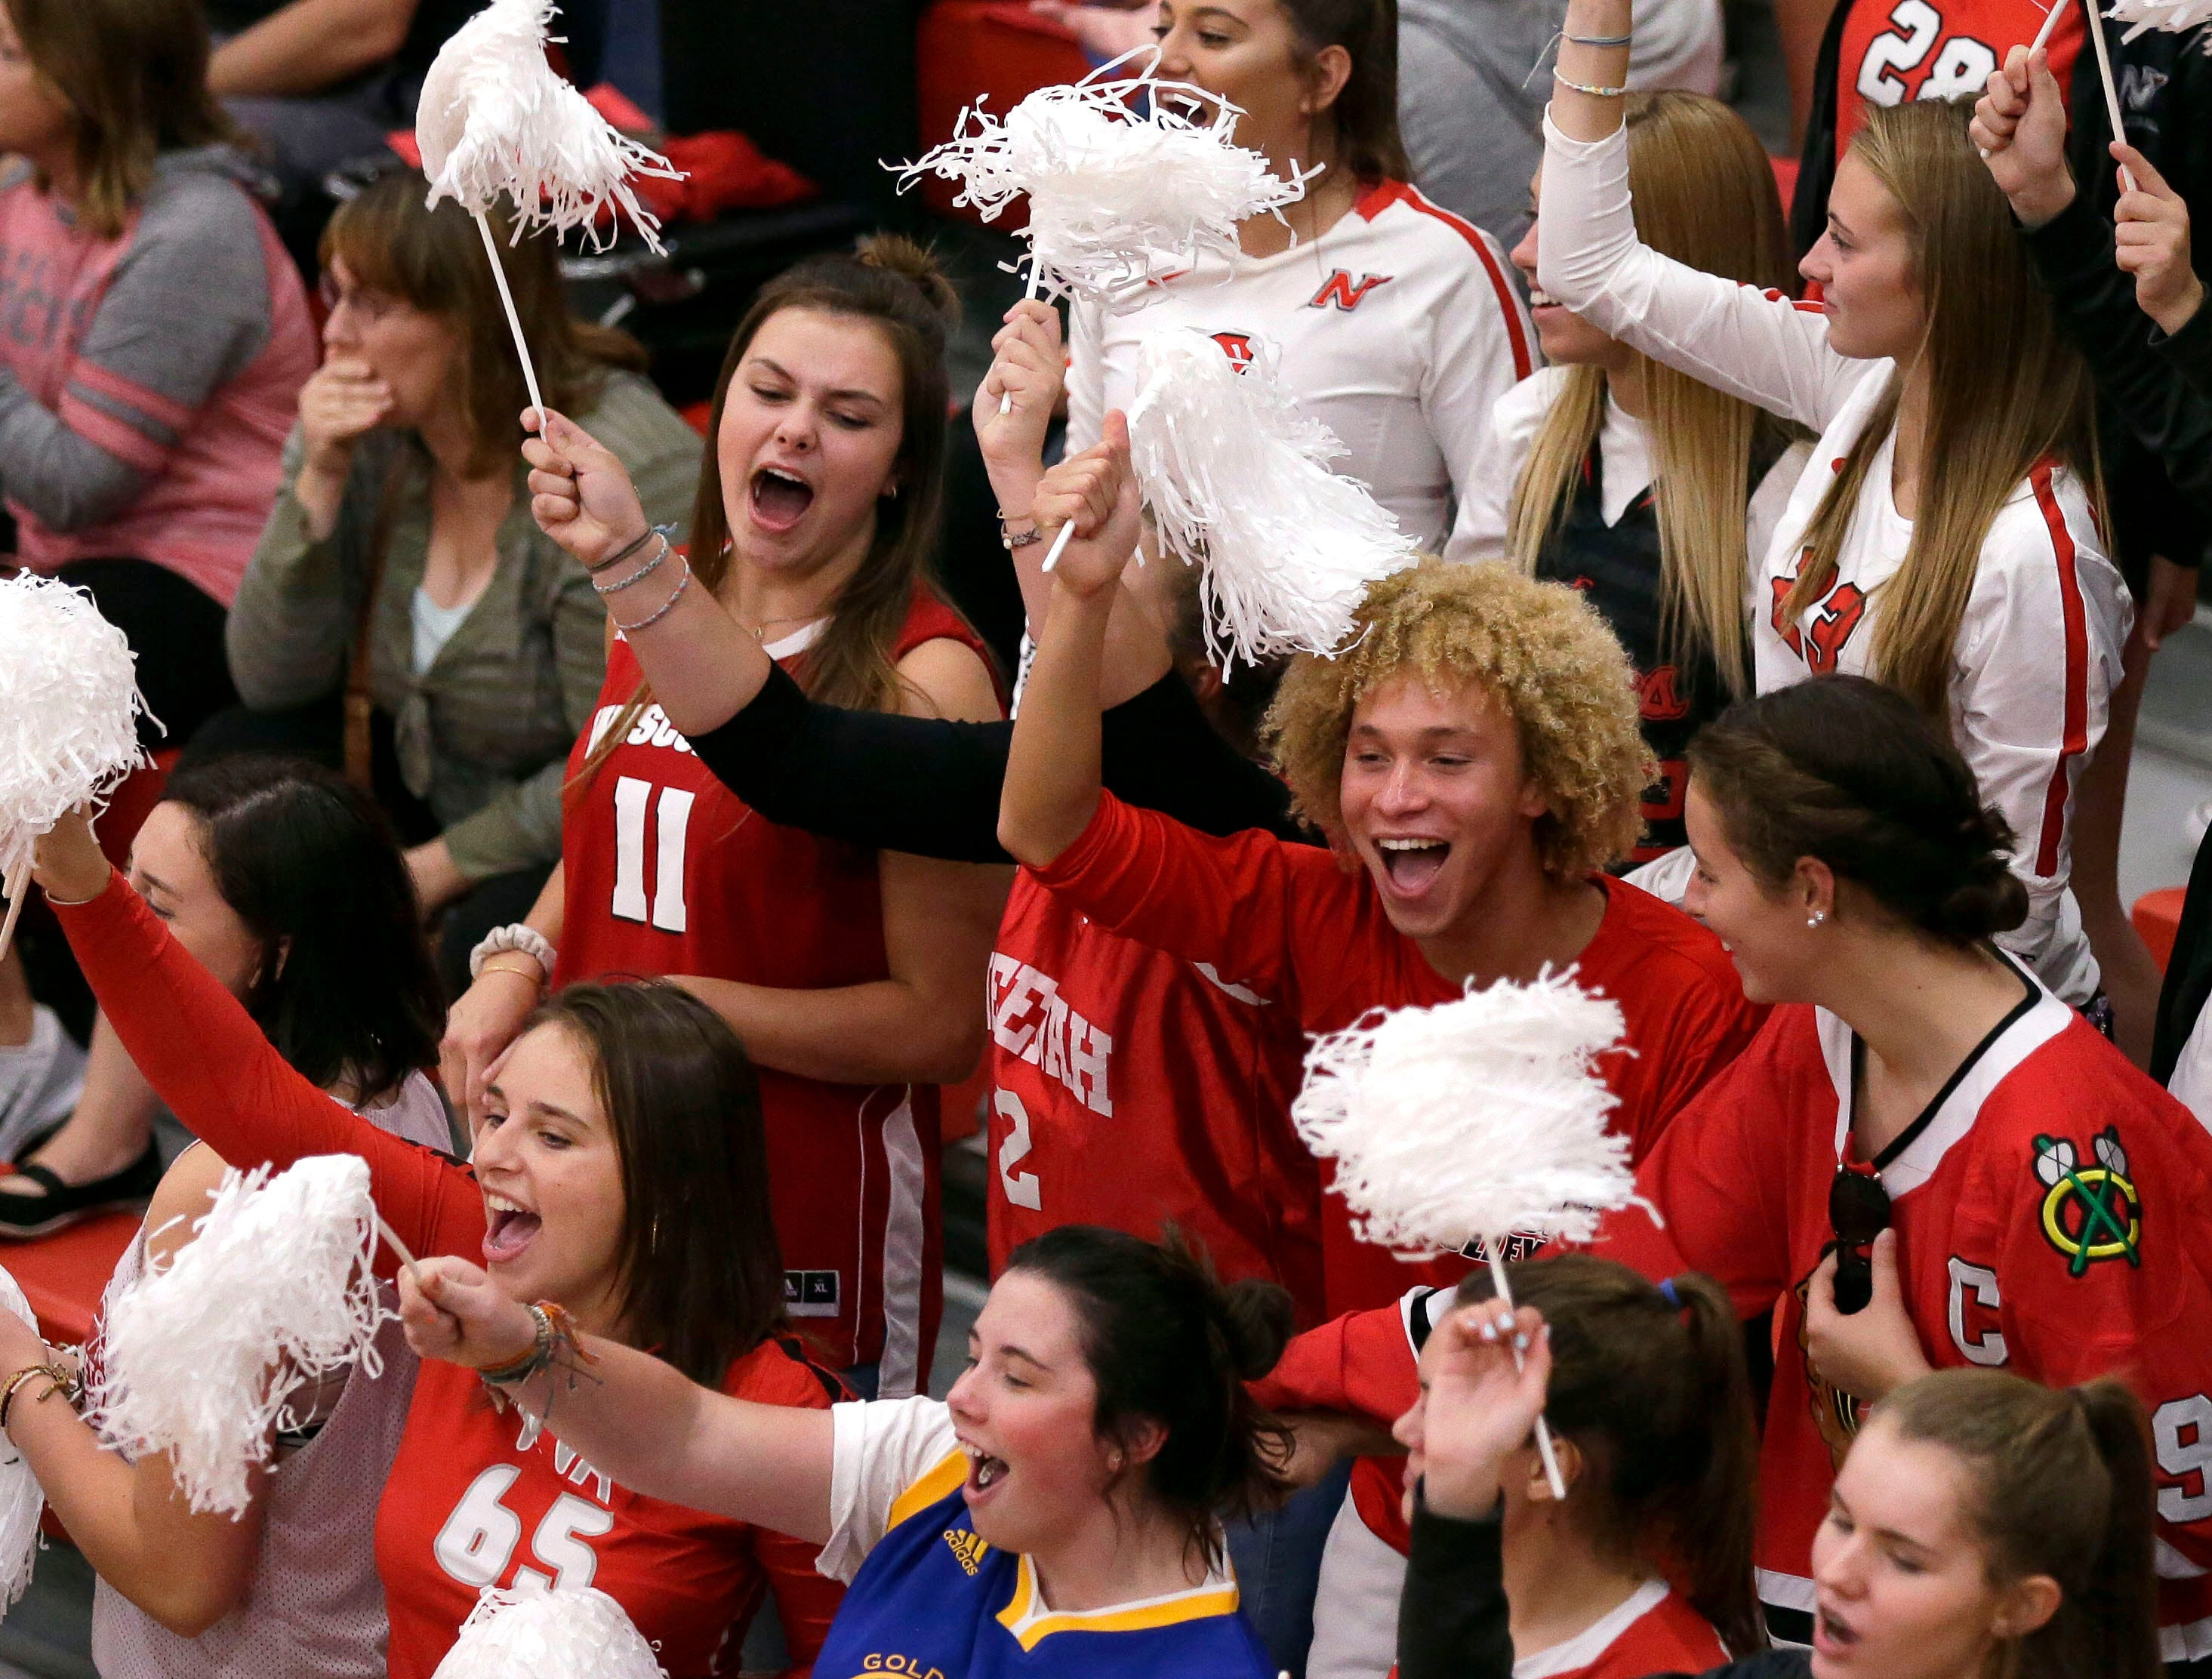 Neenah fans cheer as the Rockets take on Kimberly in FVA girls volleyball Tuesday, September 11, 2018, at Kimberly High School in Kimberly, Wis.Ron Page/USA TODAY NETWORK-Wisconsin